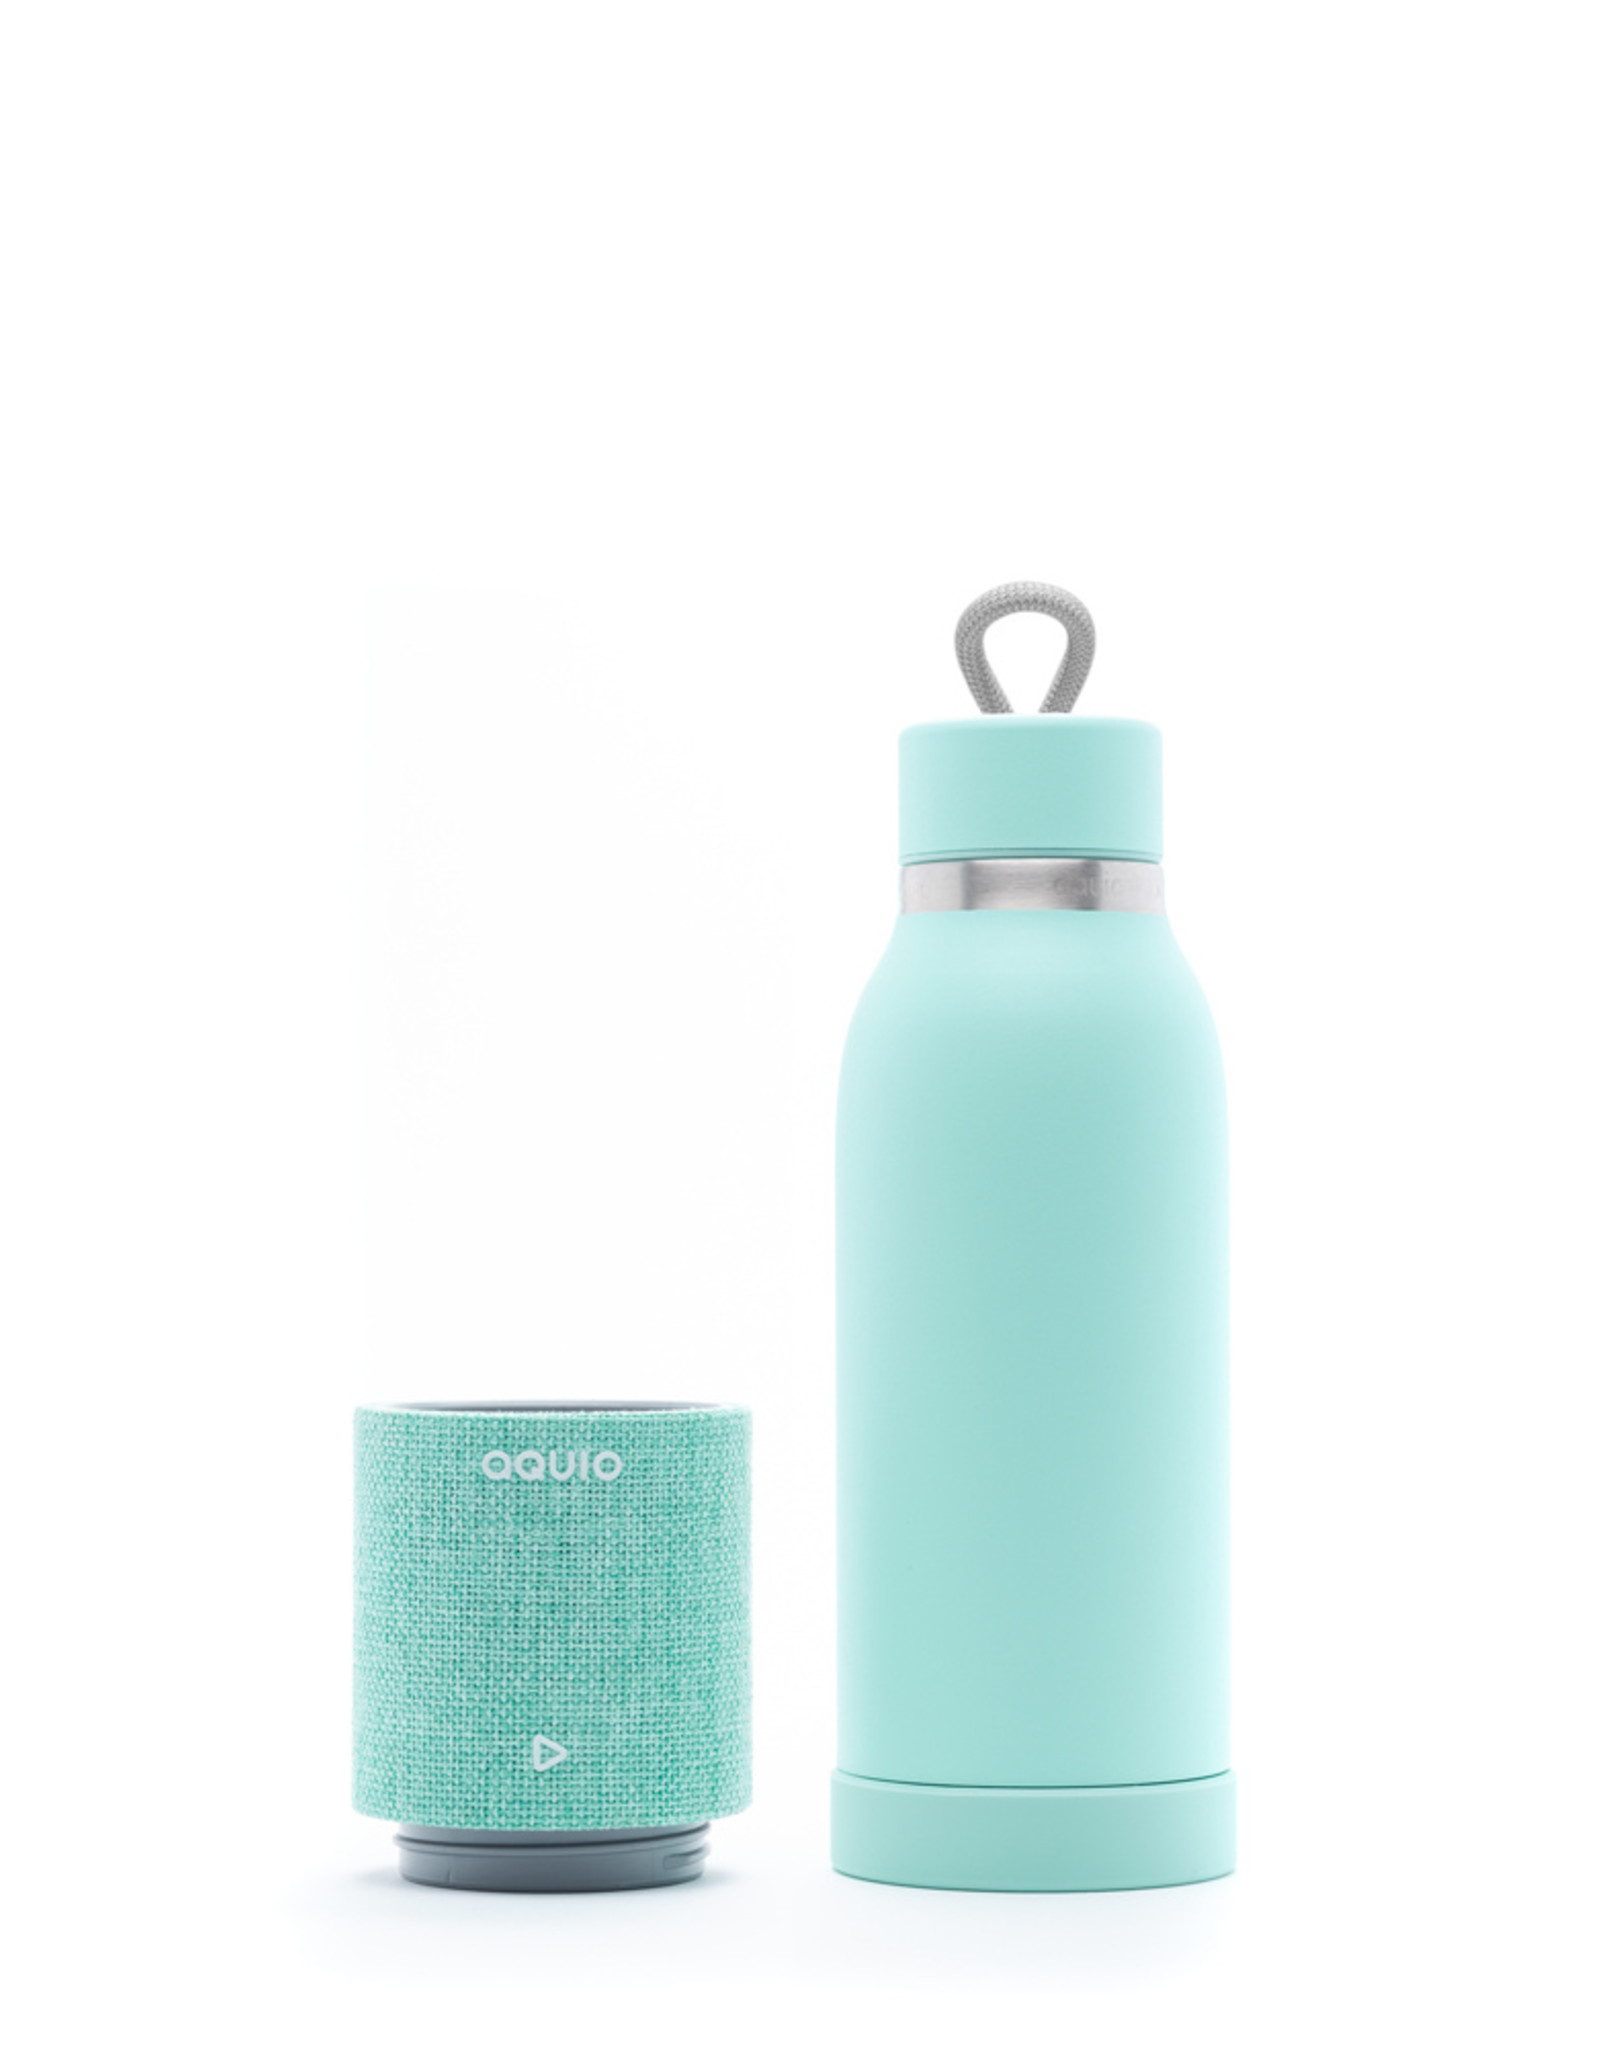 iHome iHome - Steel Insulated Bottle with Rechargeable Bluetooth Speaker Seafoam 115-1952